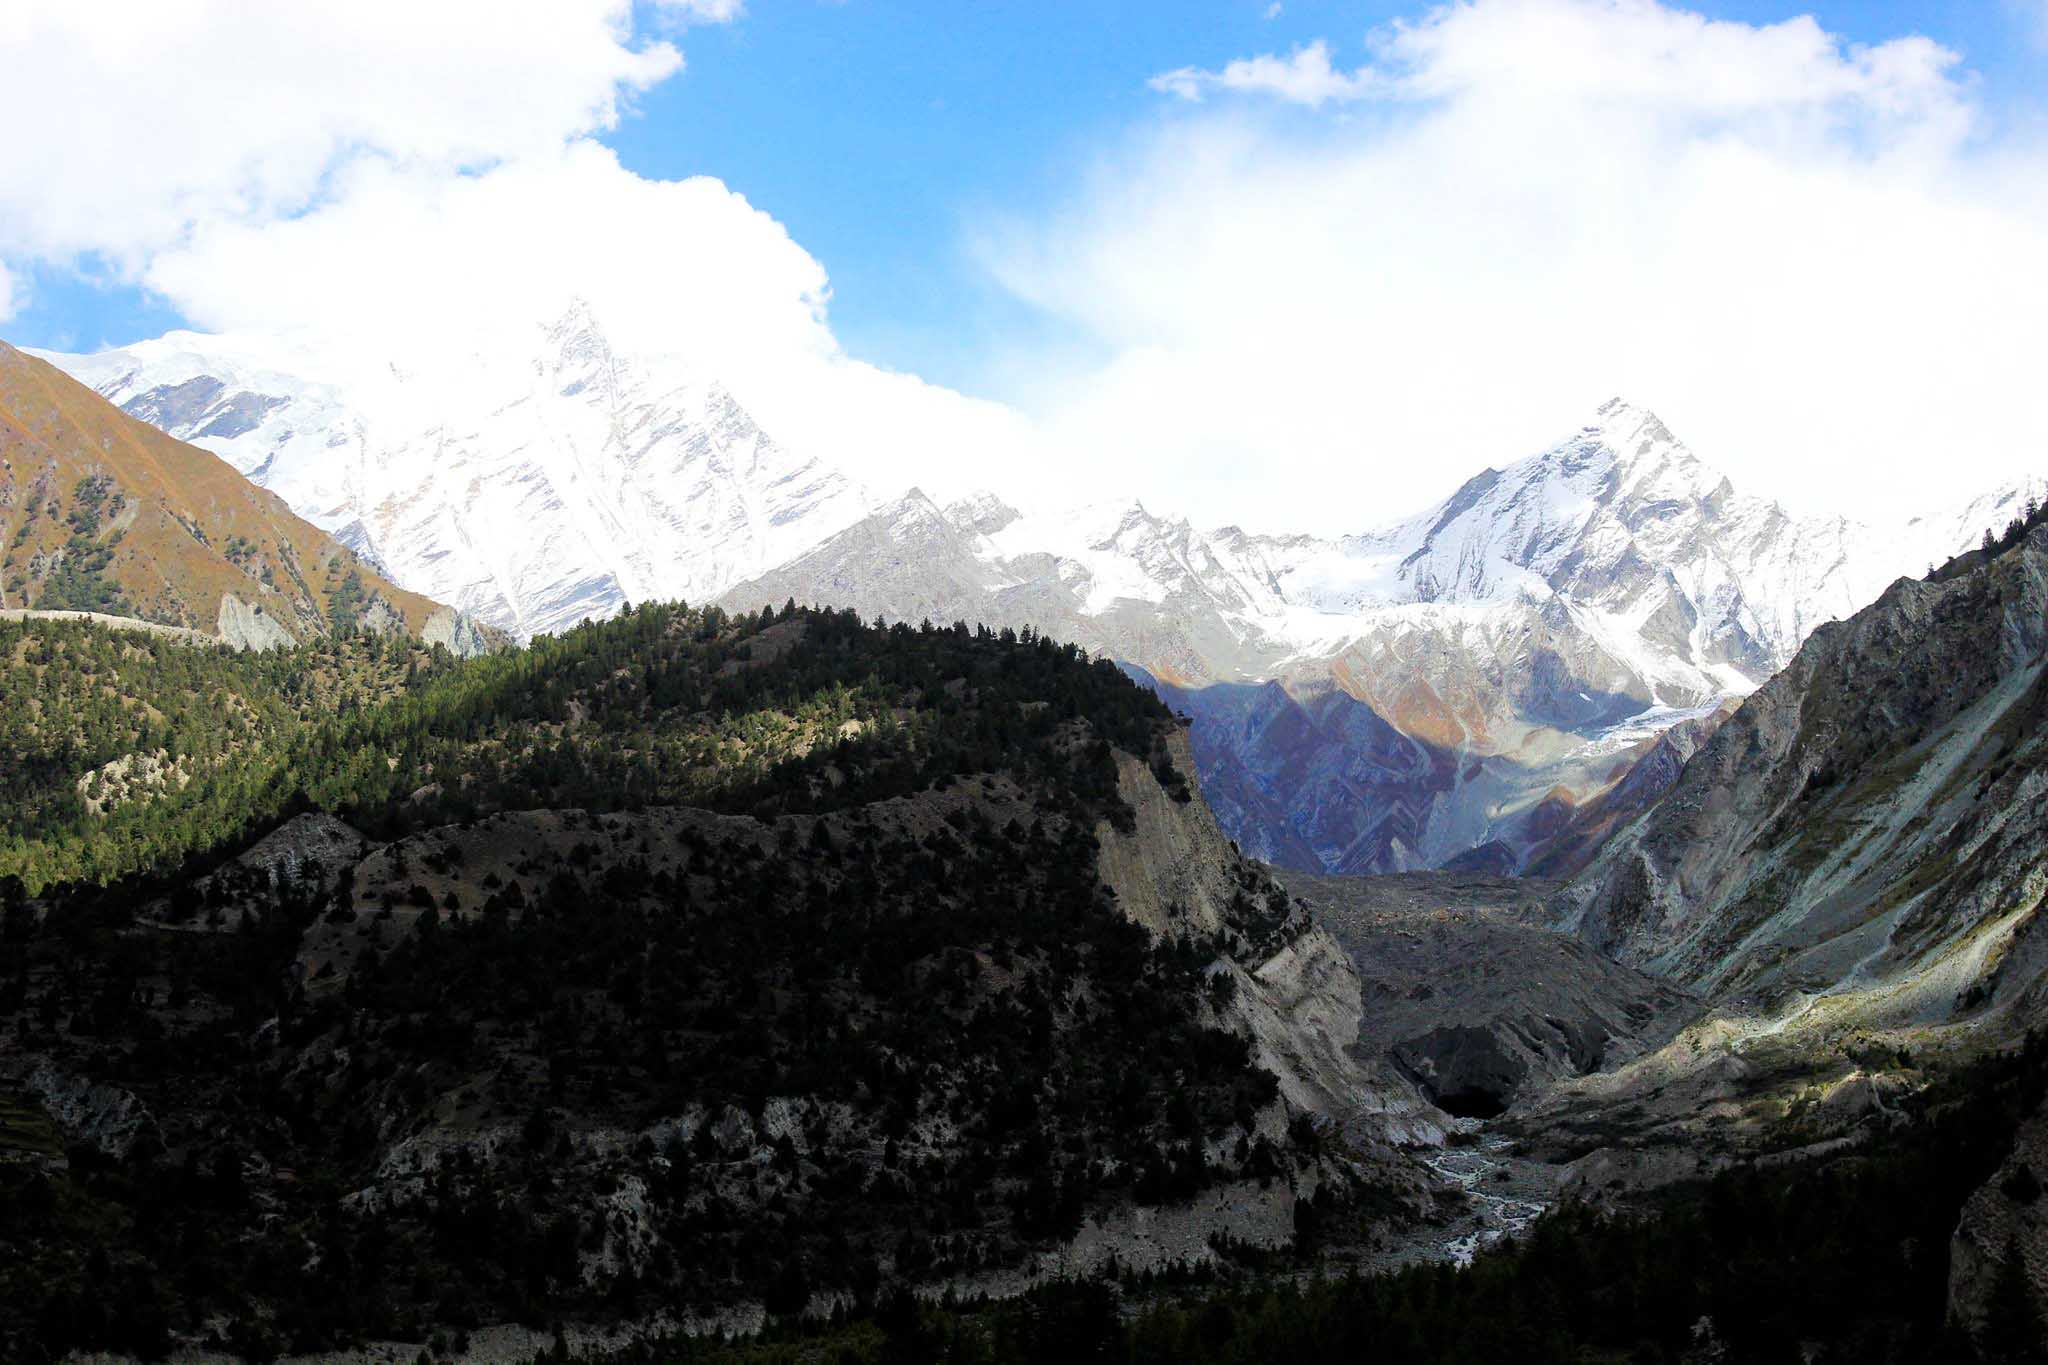 Bagrote valley, Gilgit-Baltistan